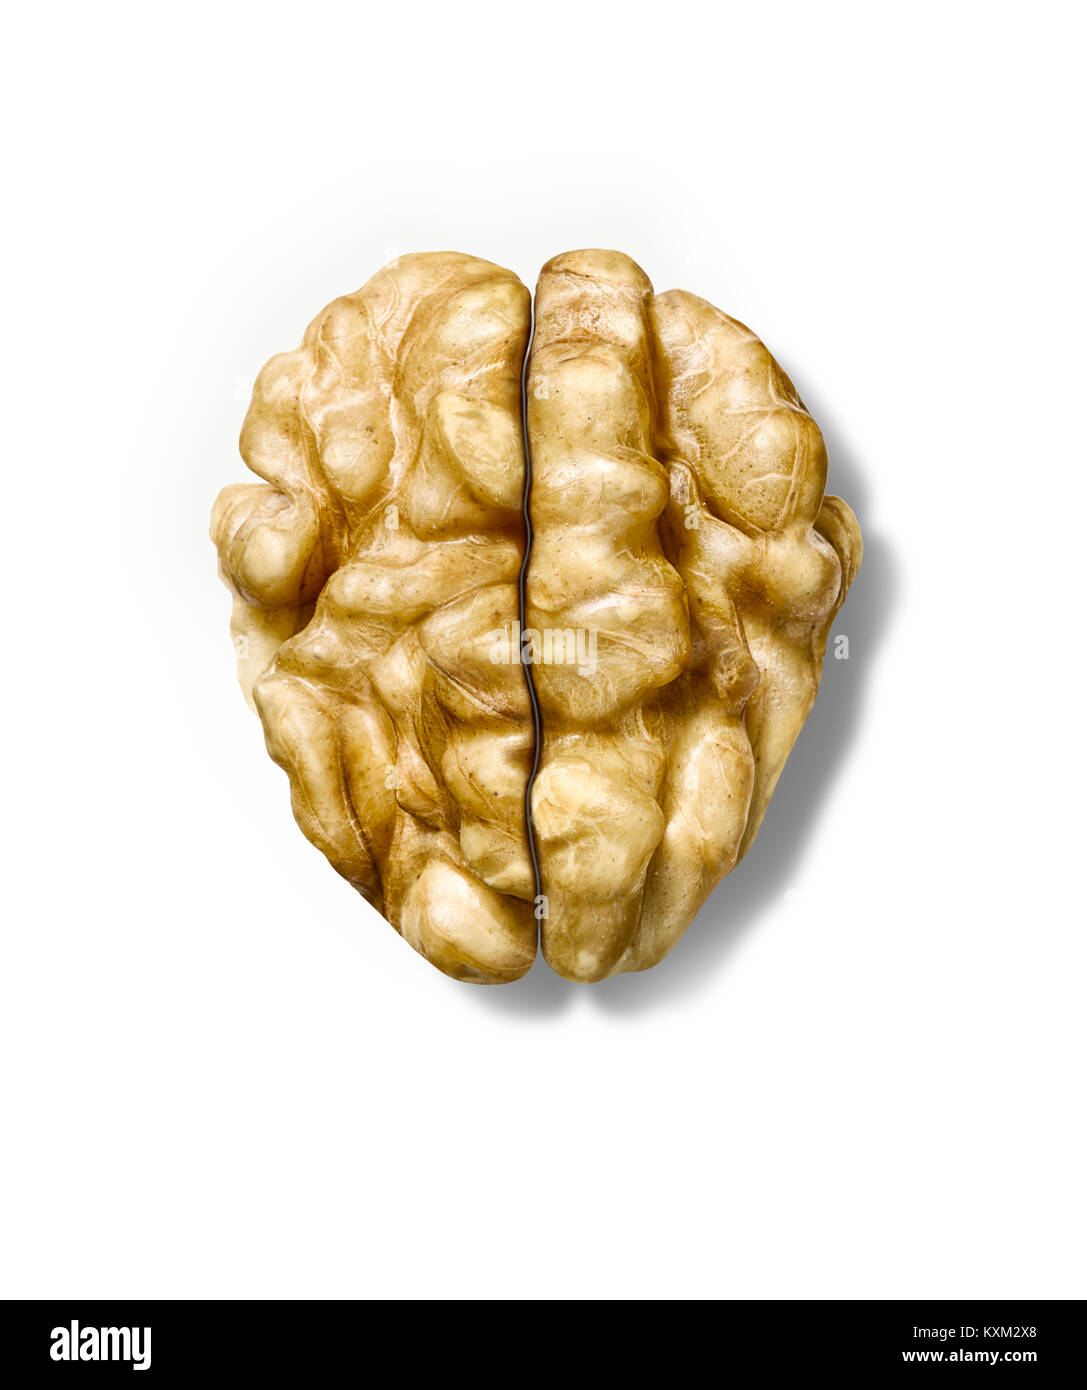 A clever shot of two halves of a Walnut positioned to look like or to form a brain shape. - Stock Image